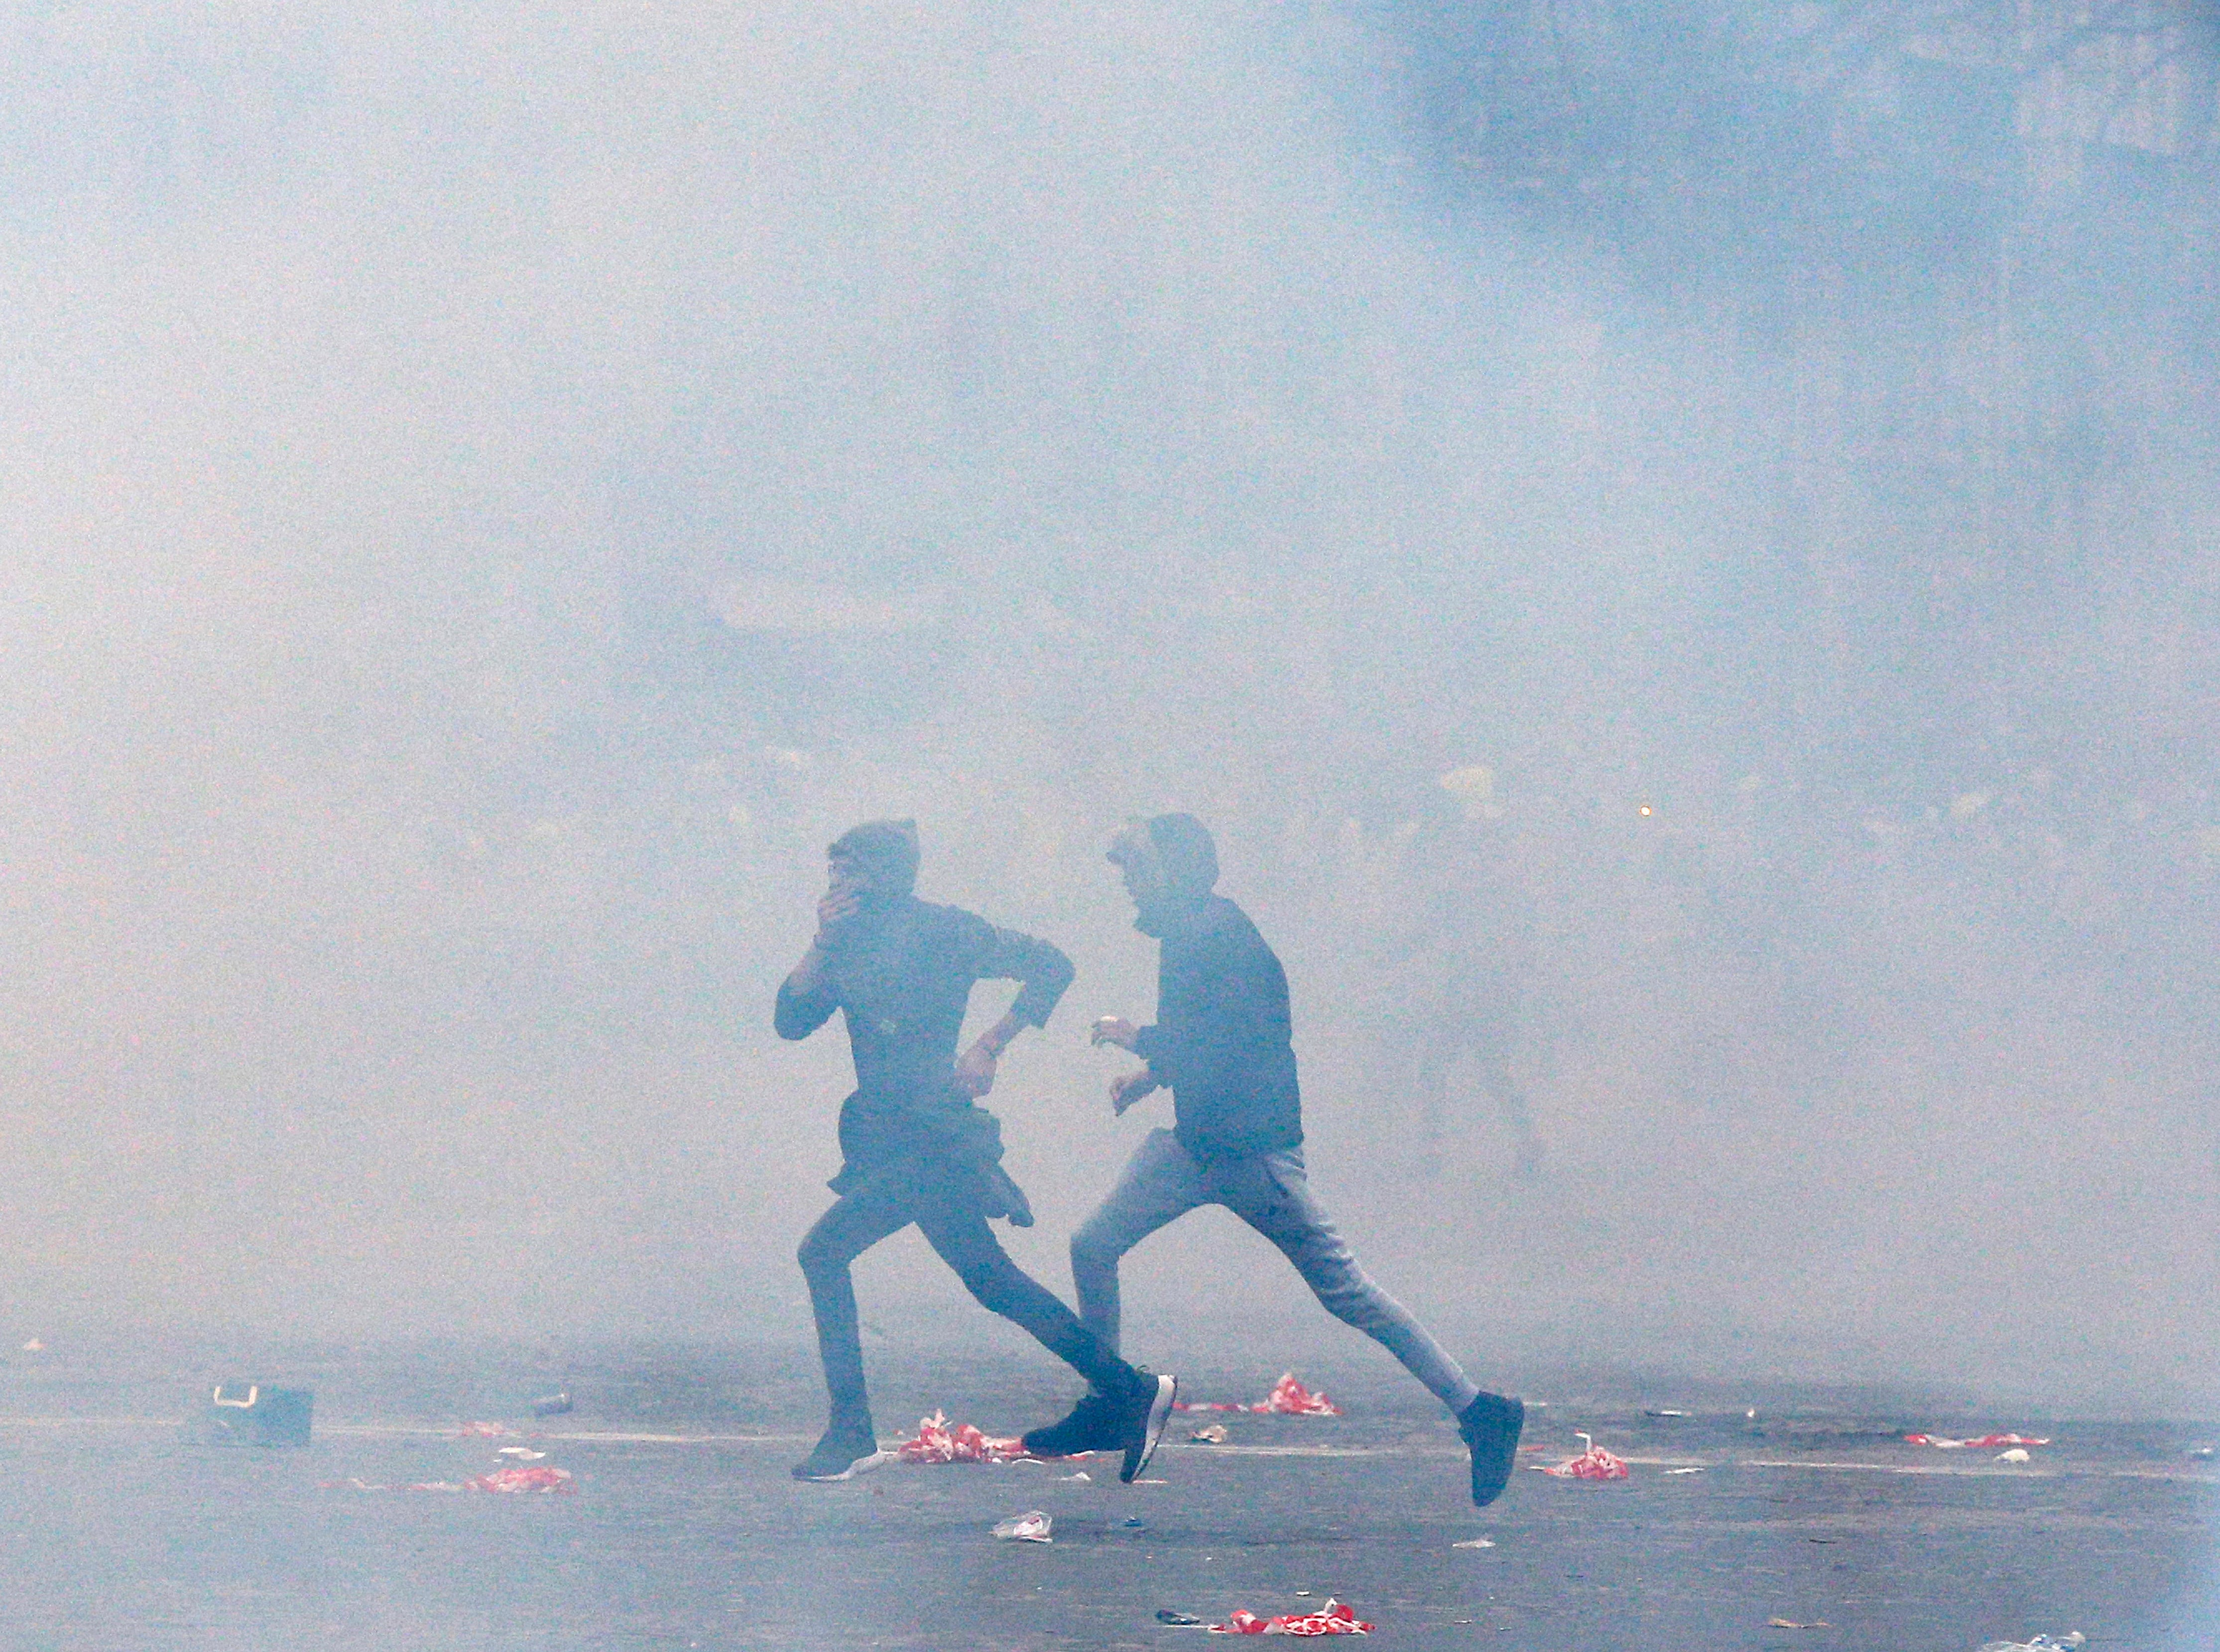 Demonstrators run away from tear gas fired by riot police during clashes in Paris, France, Saturday, Dec. 8, 2018. Crowds of protesters angry at President Emmanuel Macron and France's high taxes tried to converge on the presidential palace Saturday, some scuffling with police firing tear gas, amid exceptional security measures aimed at preventing a repeat of last week's rioting.